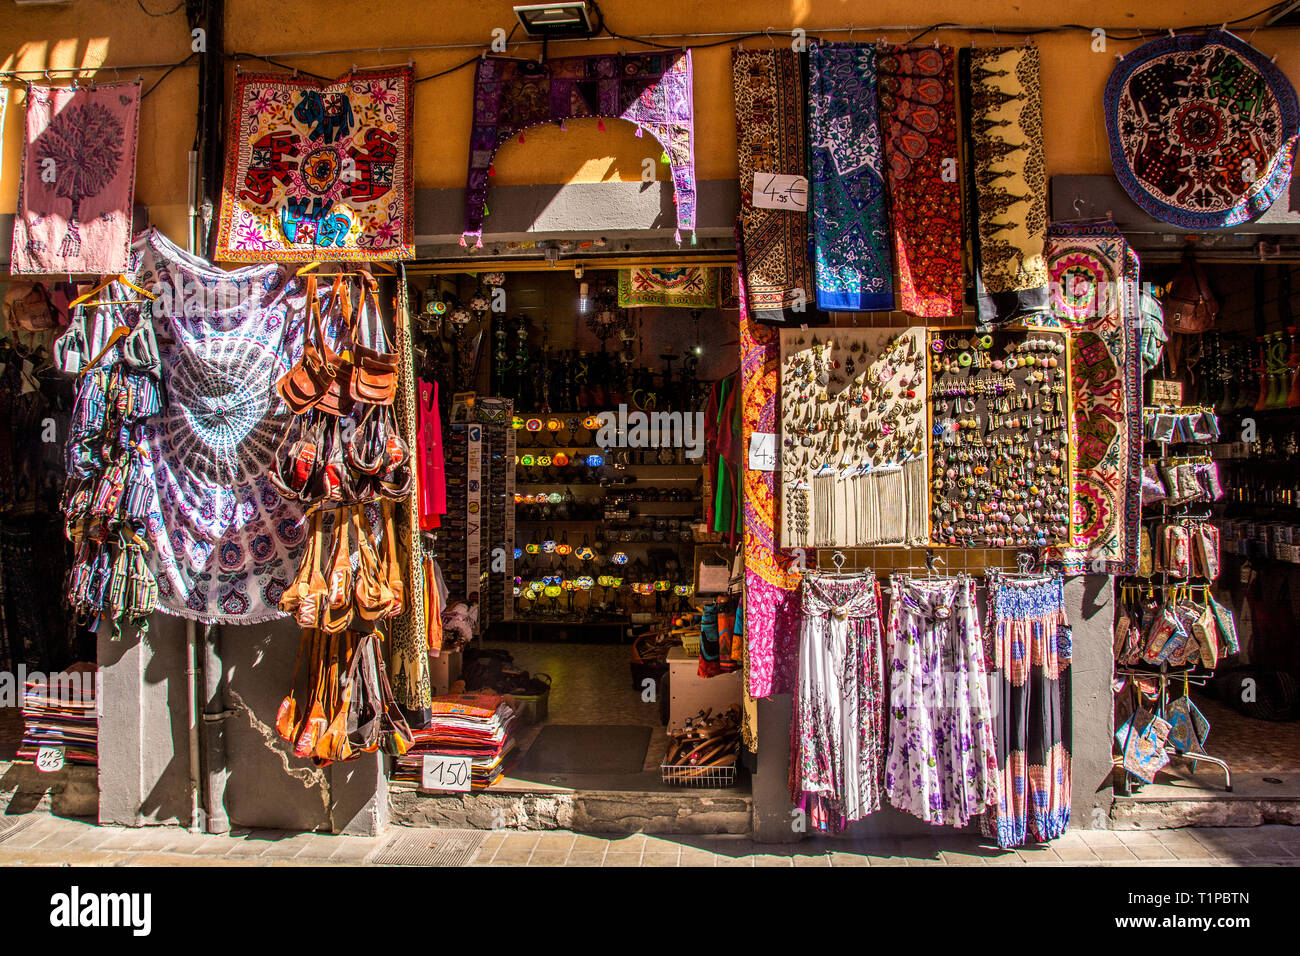 Venders selling a variety of clothing and other items; Granada, Spain. - Stock Image